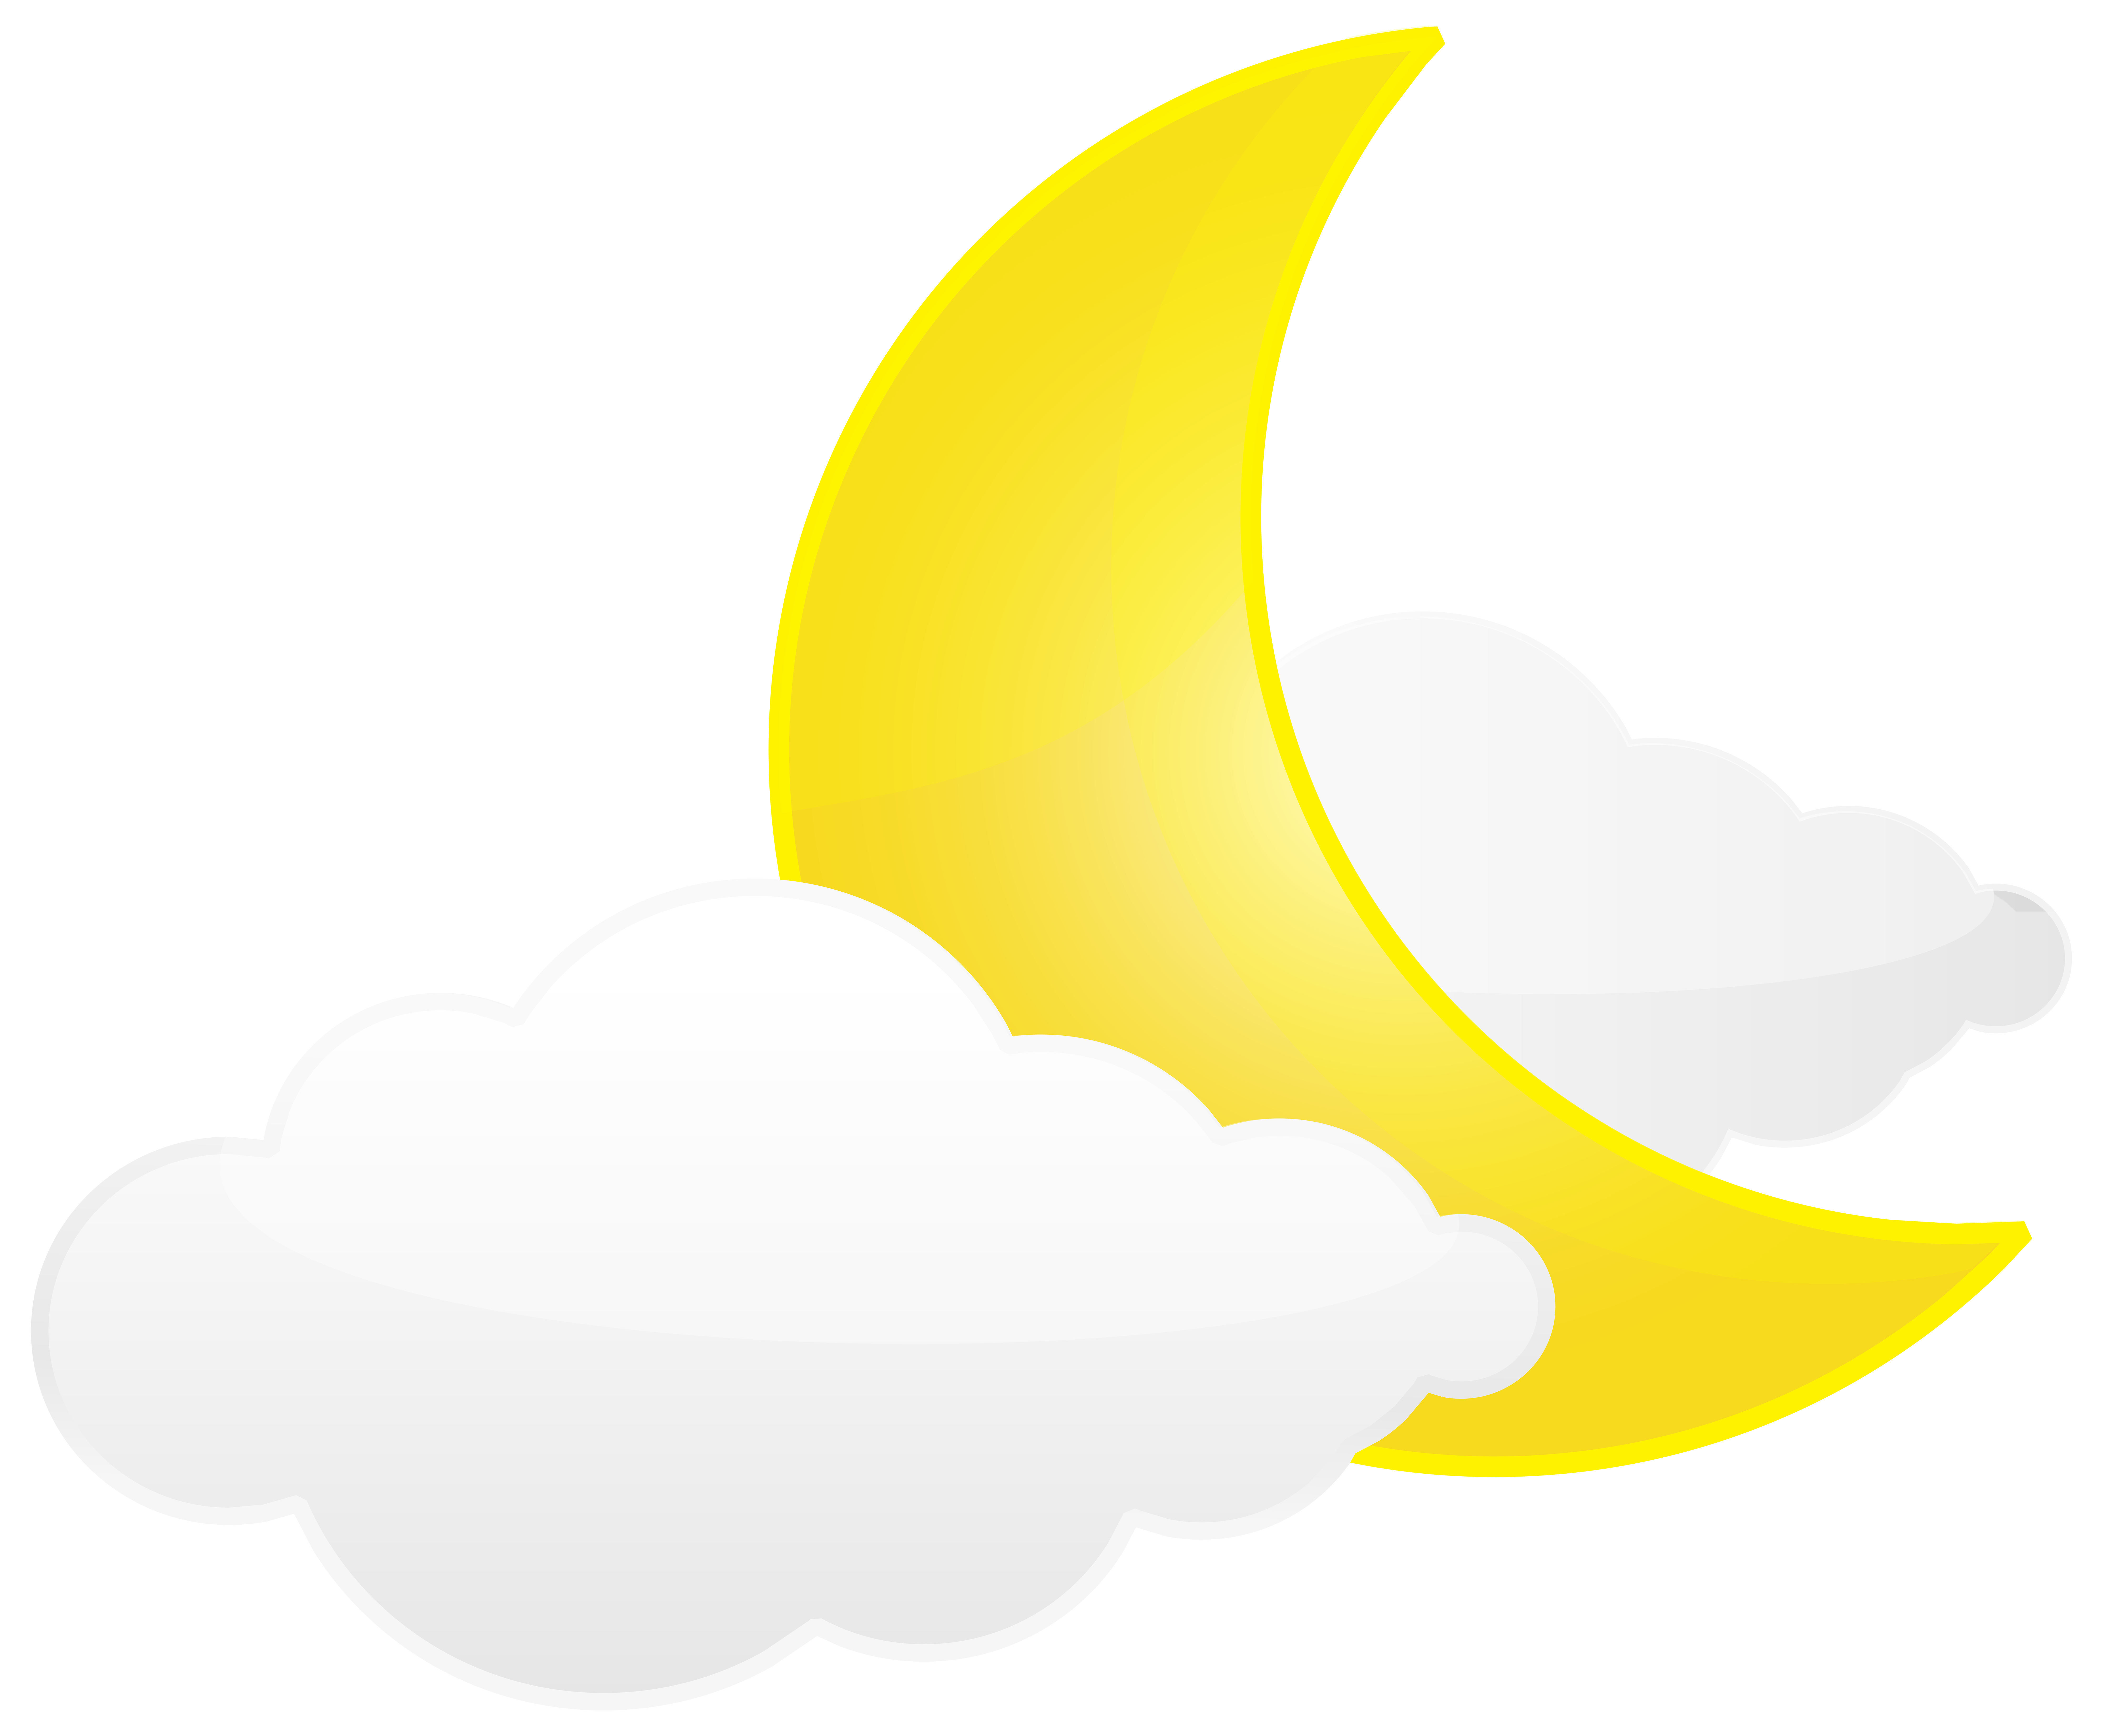 8000x6604 Moon With Clouds Png Transparent Clip Art Imageu200b Gallery